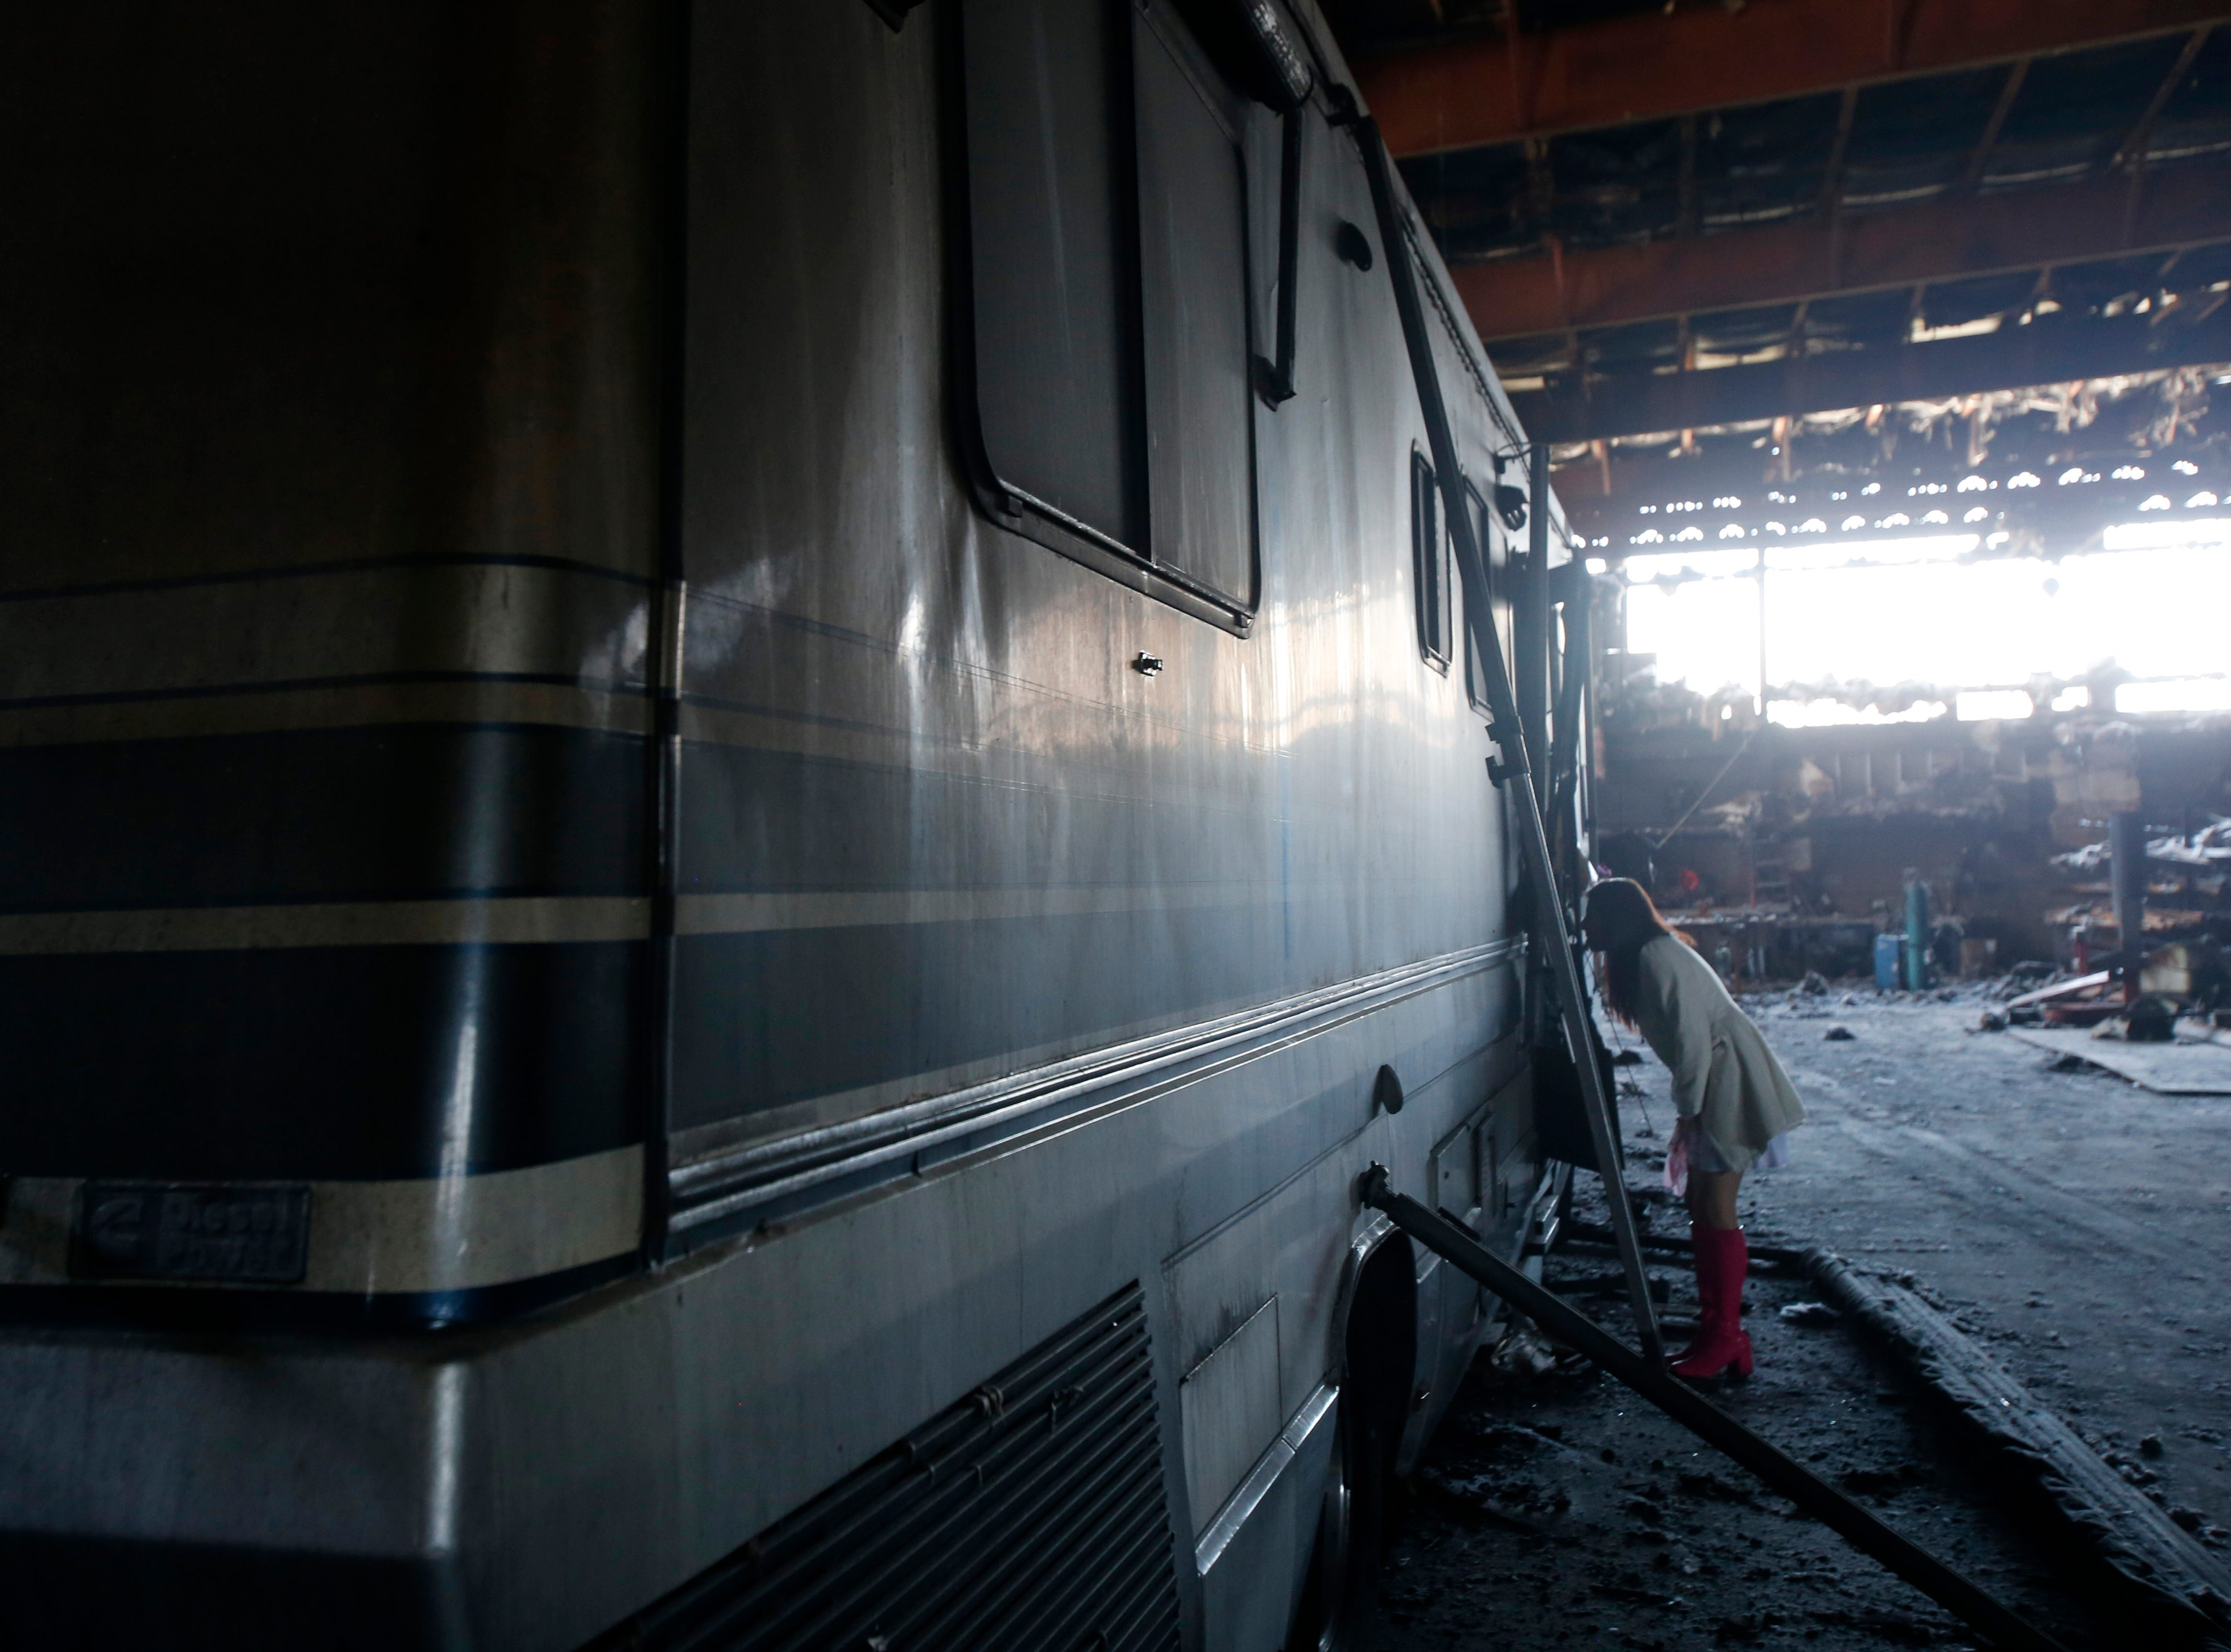 Katie Gleason takes a look inside her motorhome which is stored Inside Gleason Incorporated's building in the Town of Poughkeepsie on April 17, 2019. A fire in March damaged the building beyond repair.